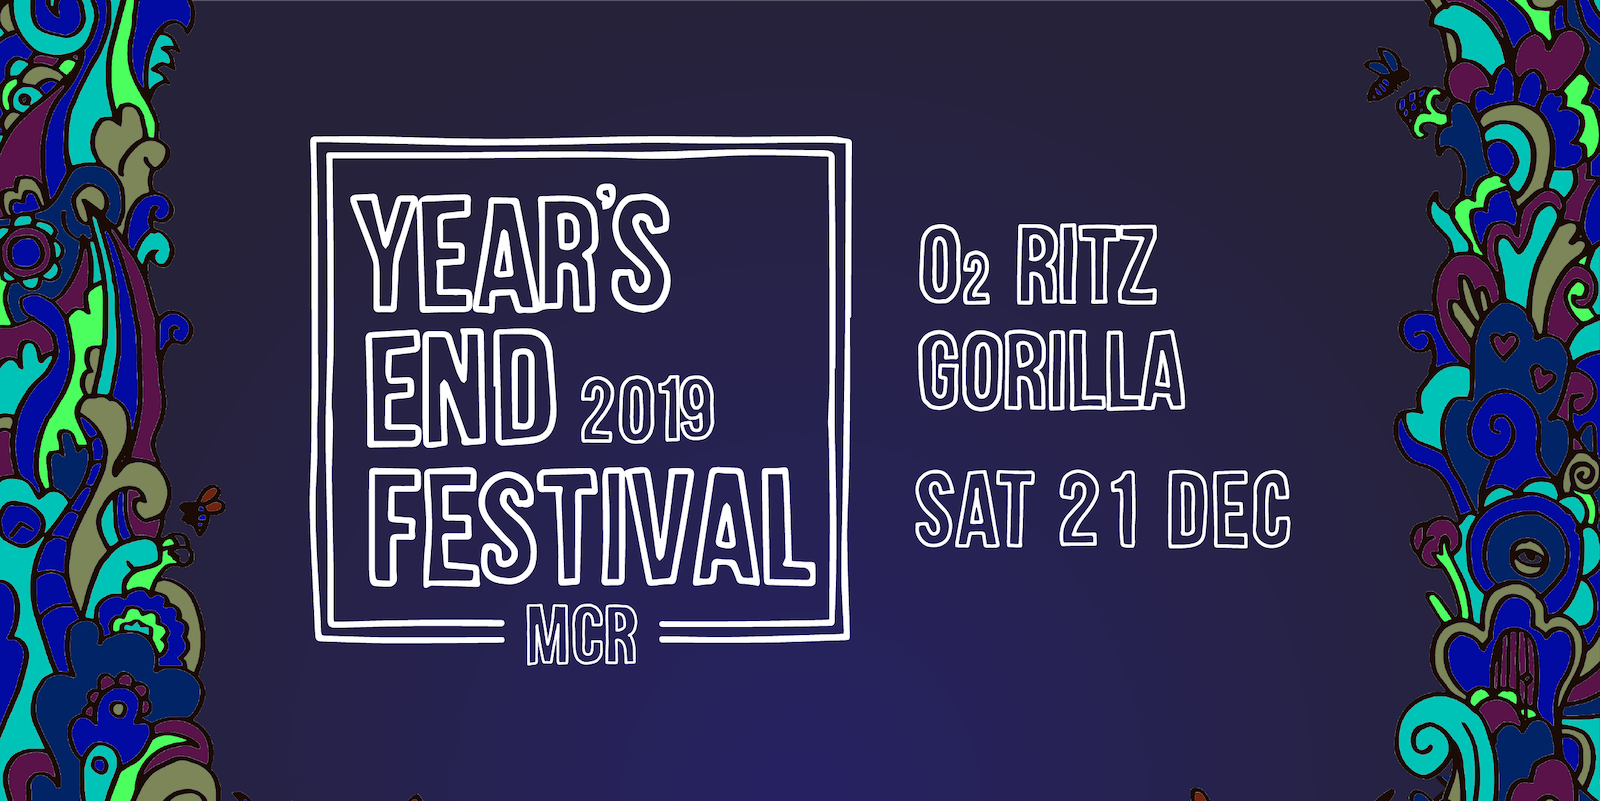 Year's End Festival 2019